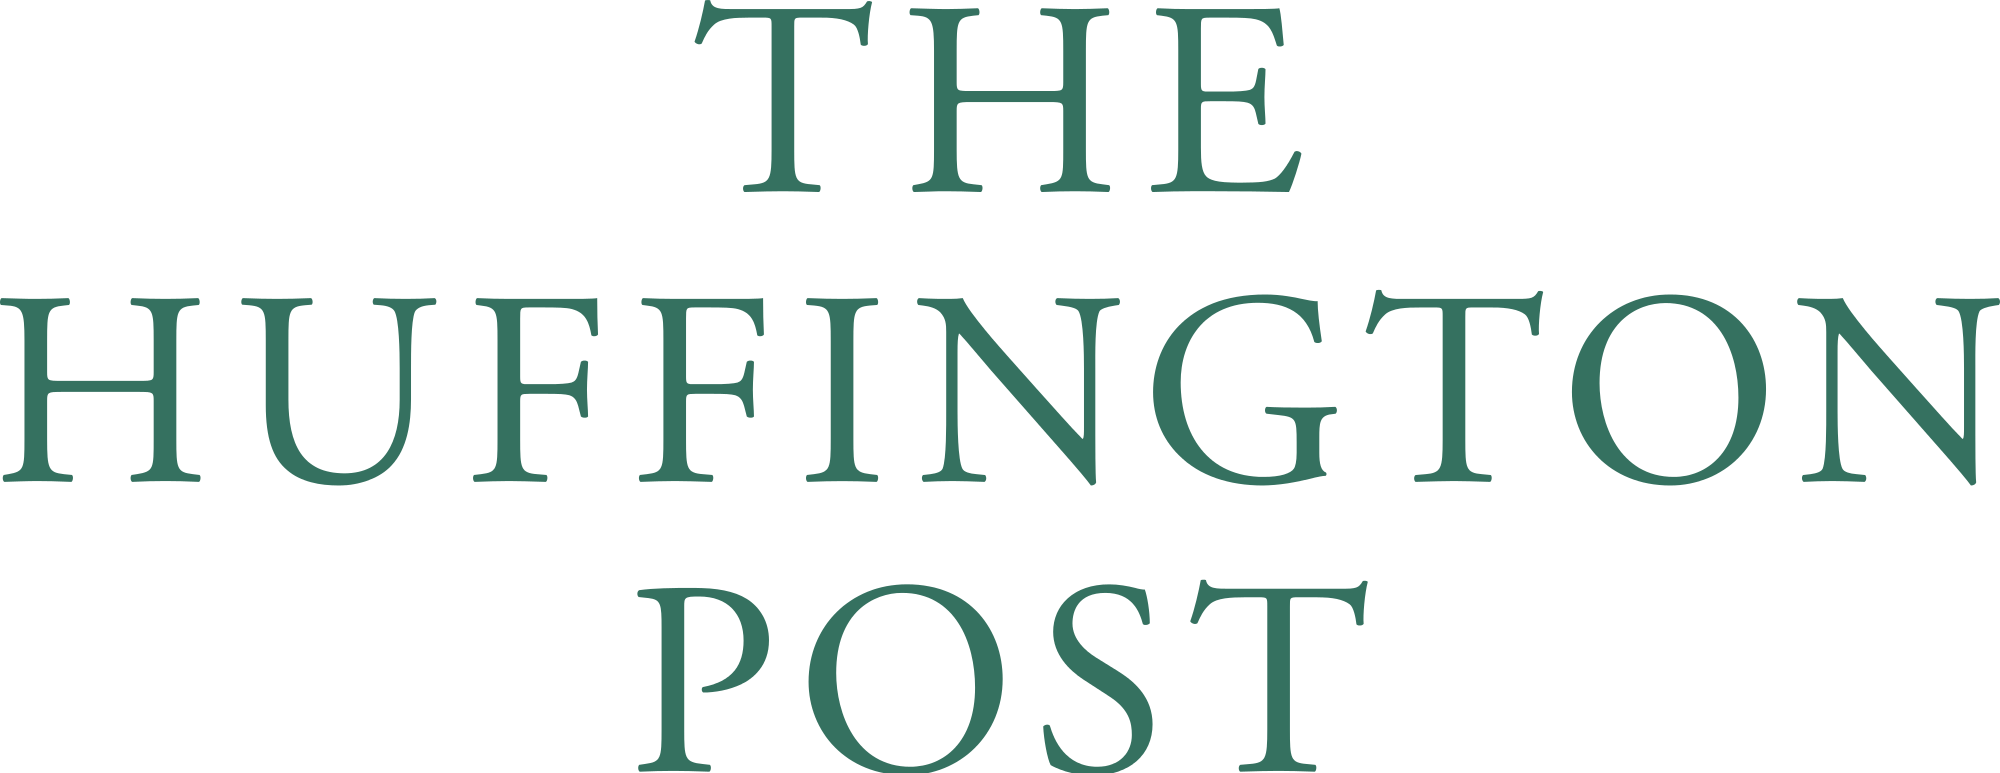 the huffington post.png